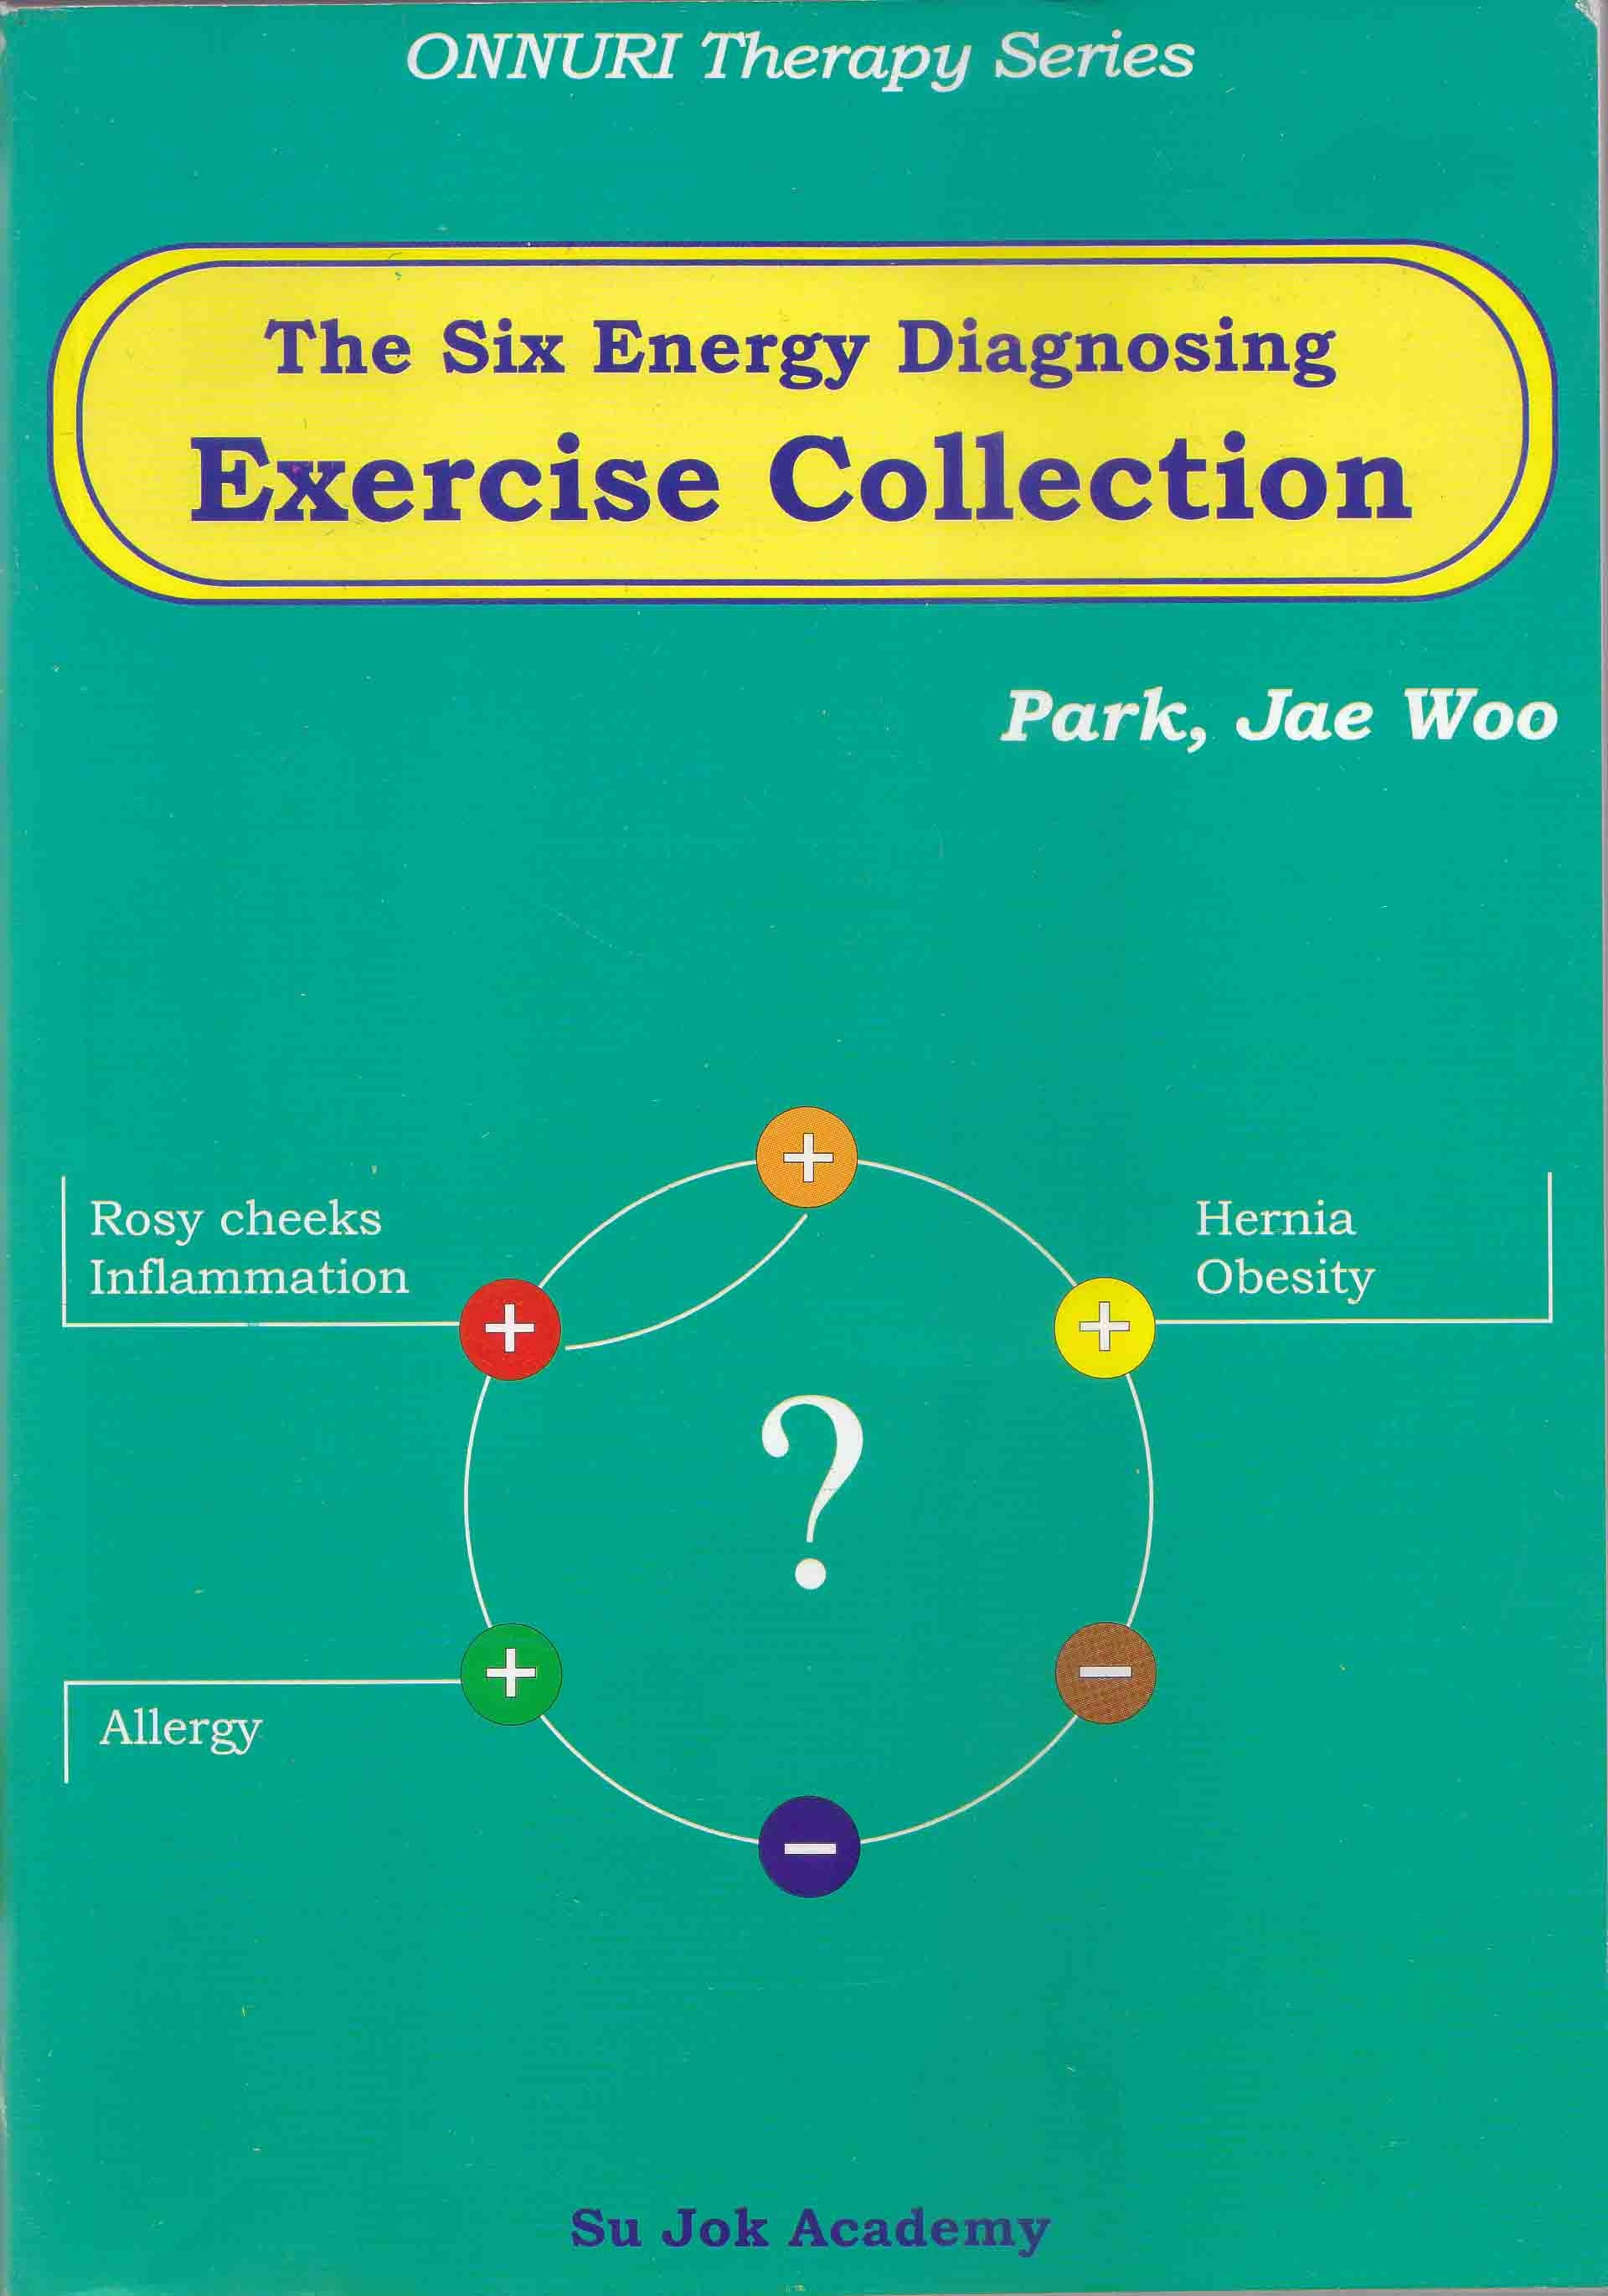 The Six Energy Diagnosing Exercise Collection  - JRB